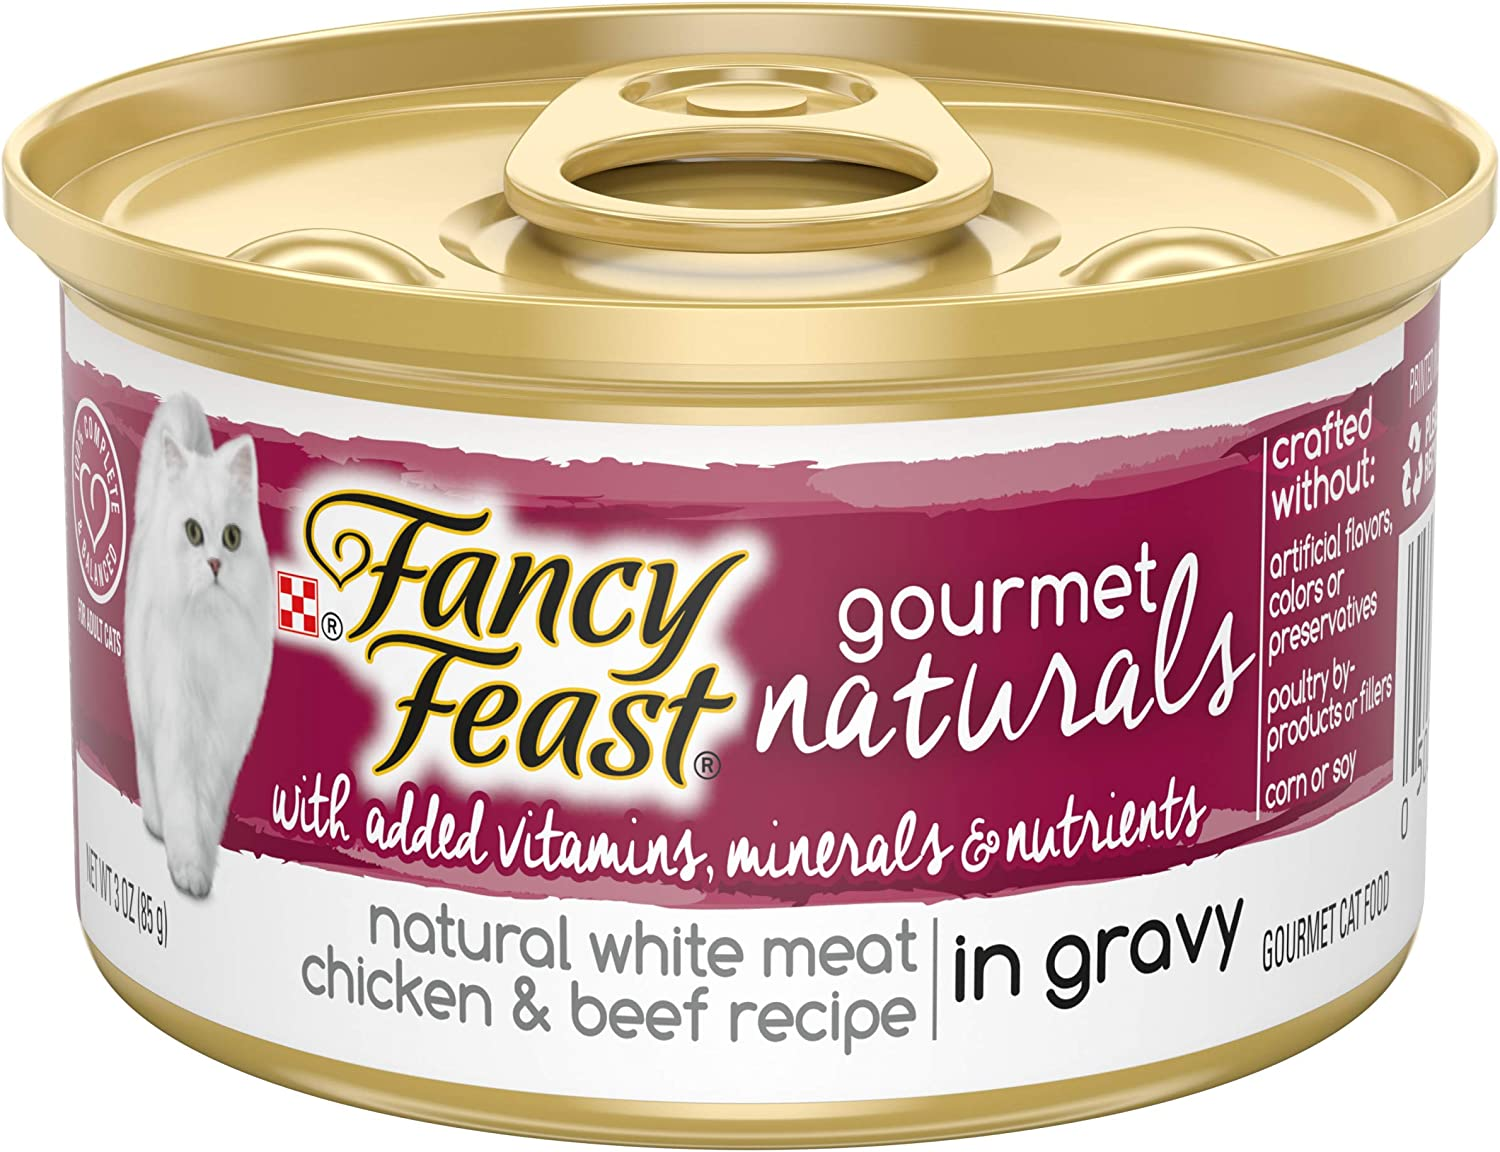 Purina Fancy Feast Natural Gravy Wet Cat Food, Gourmet Naturals Natural White Meat Chicken & Beef Recipe - (12) 3 oz. Cans